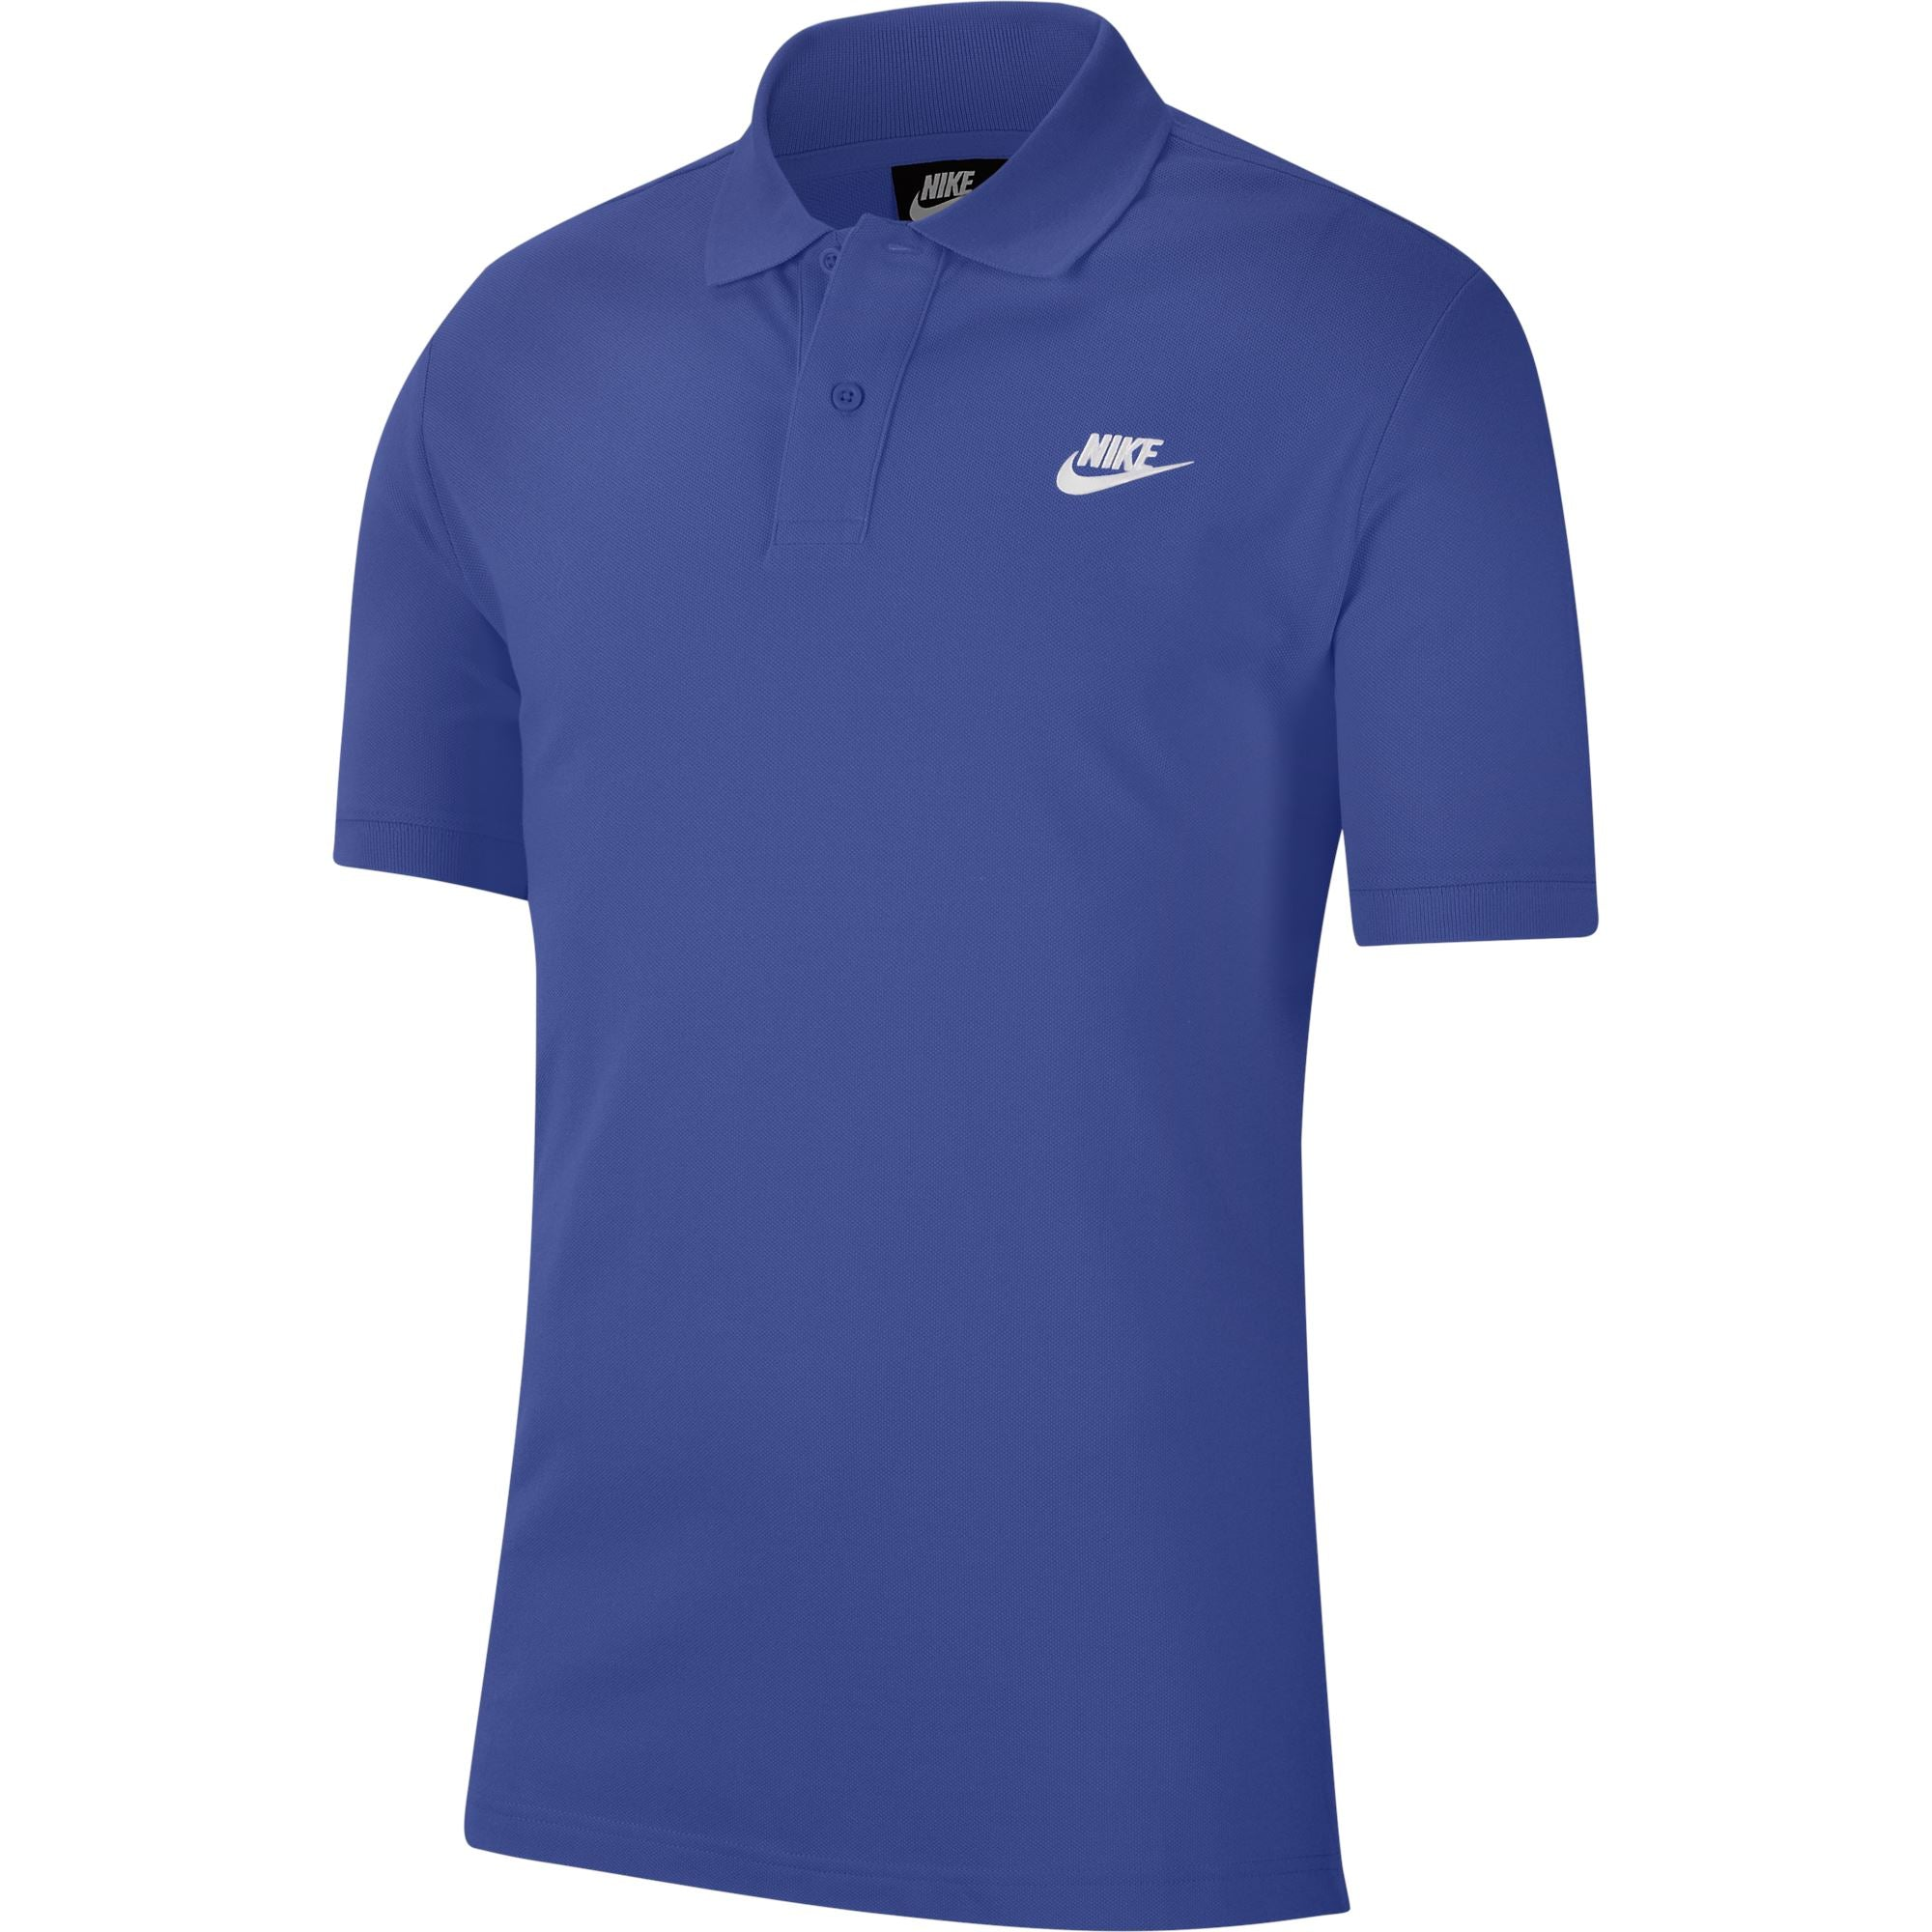 Nike Men's Sportswear Polo Shirt Match-Up - Astronomy Blue/White SP-ApparelShirts-Mens Nike